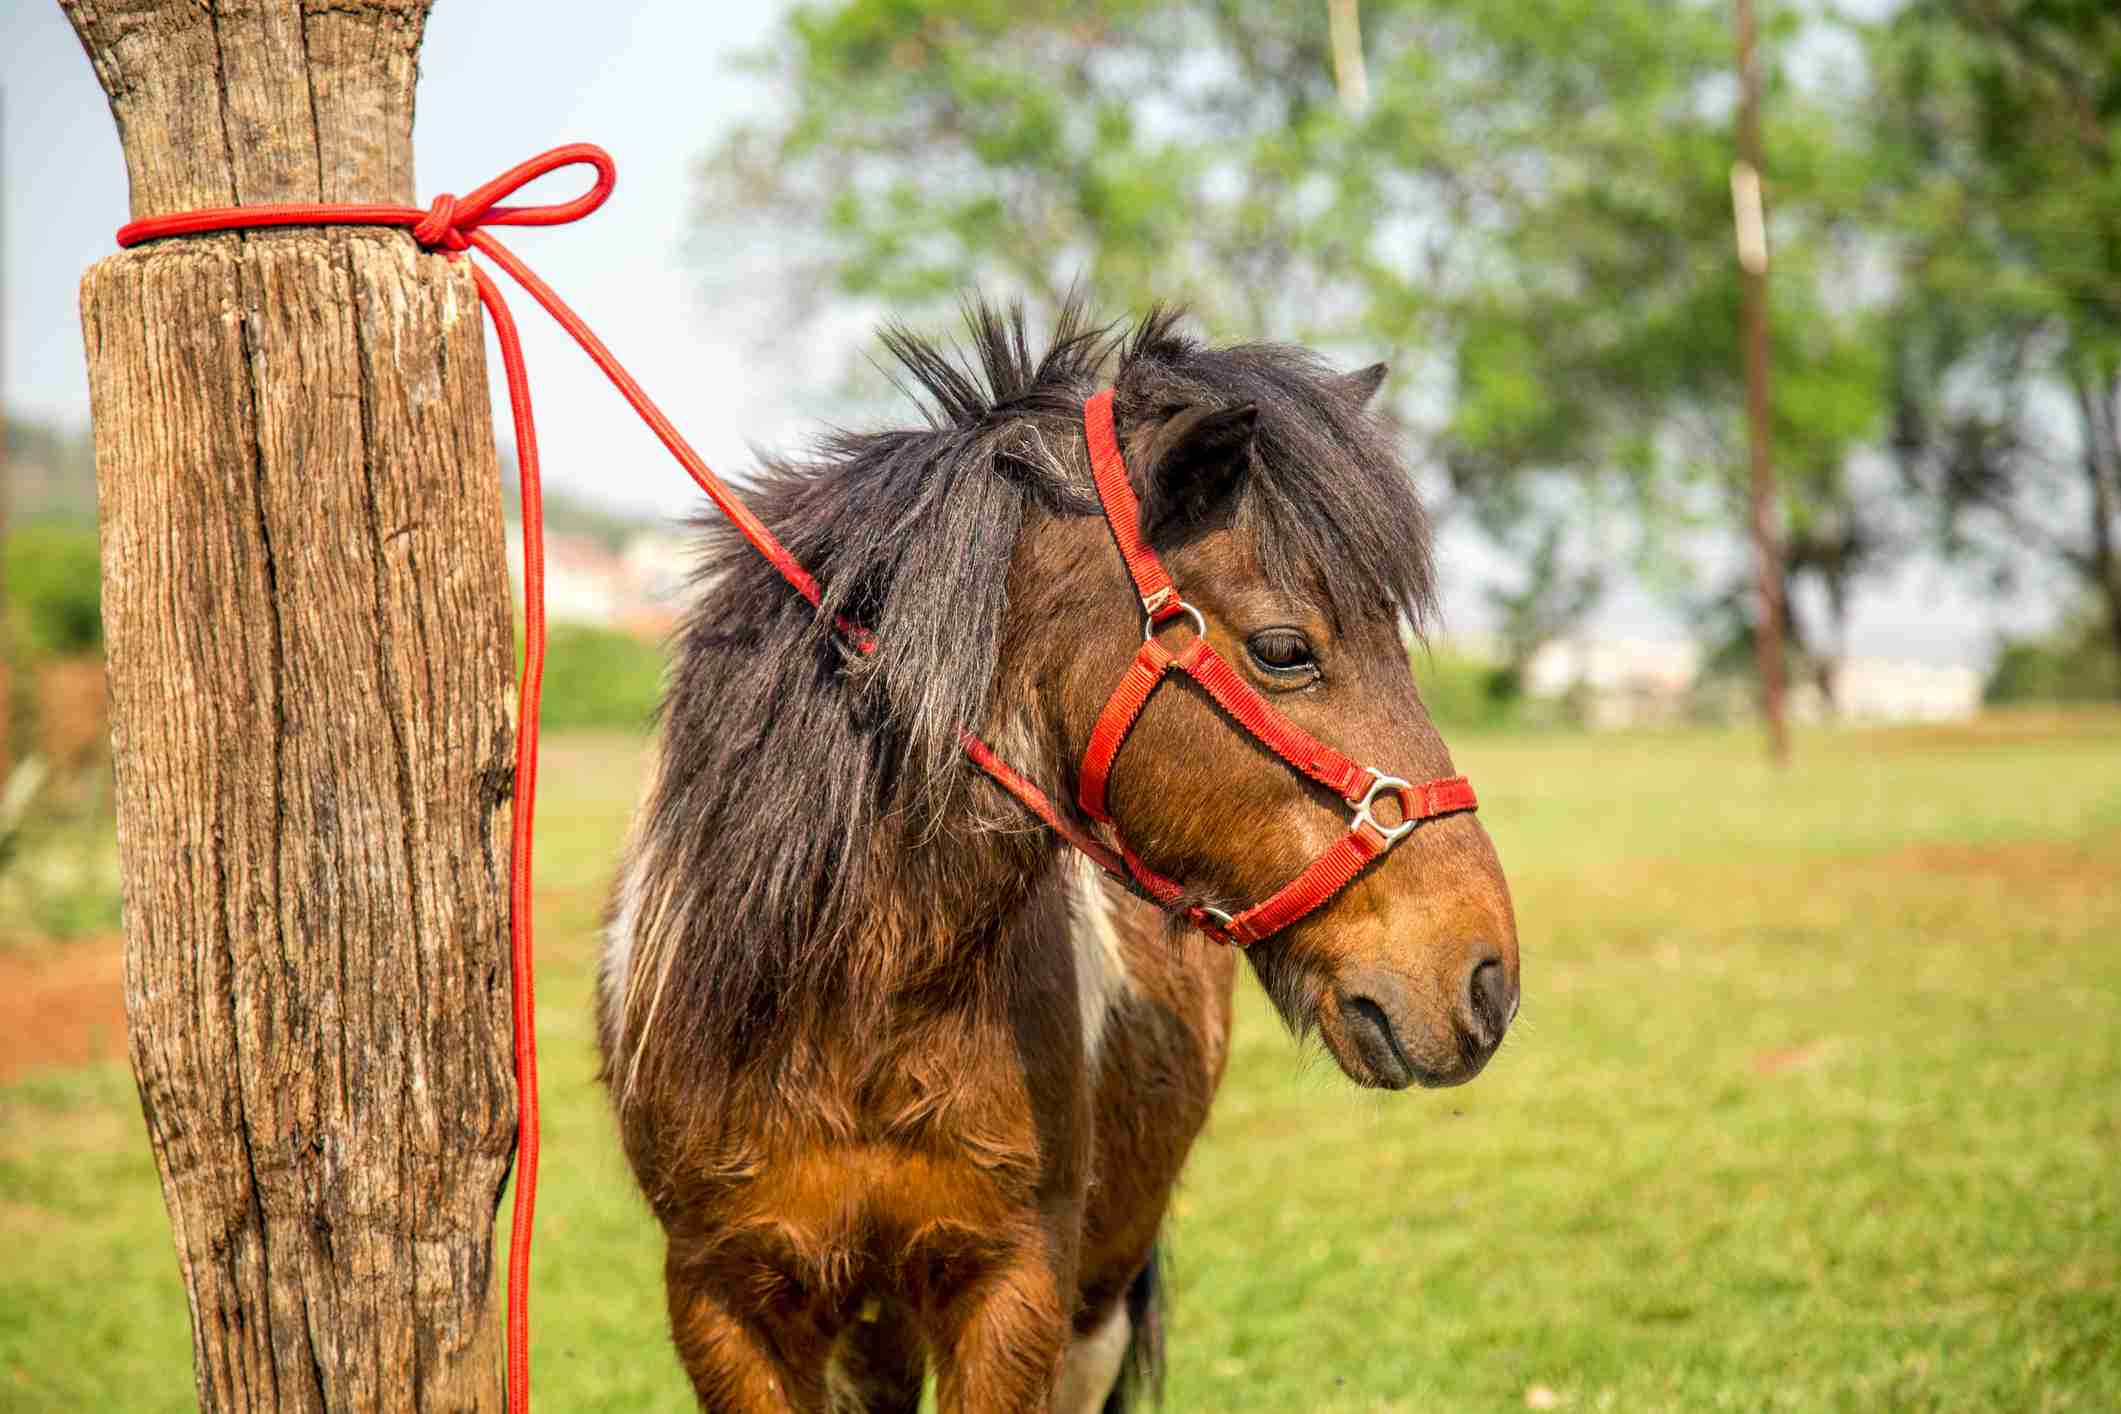 Horse tied with a short lease